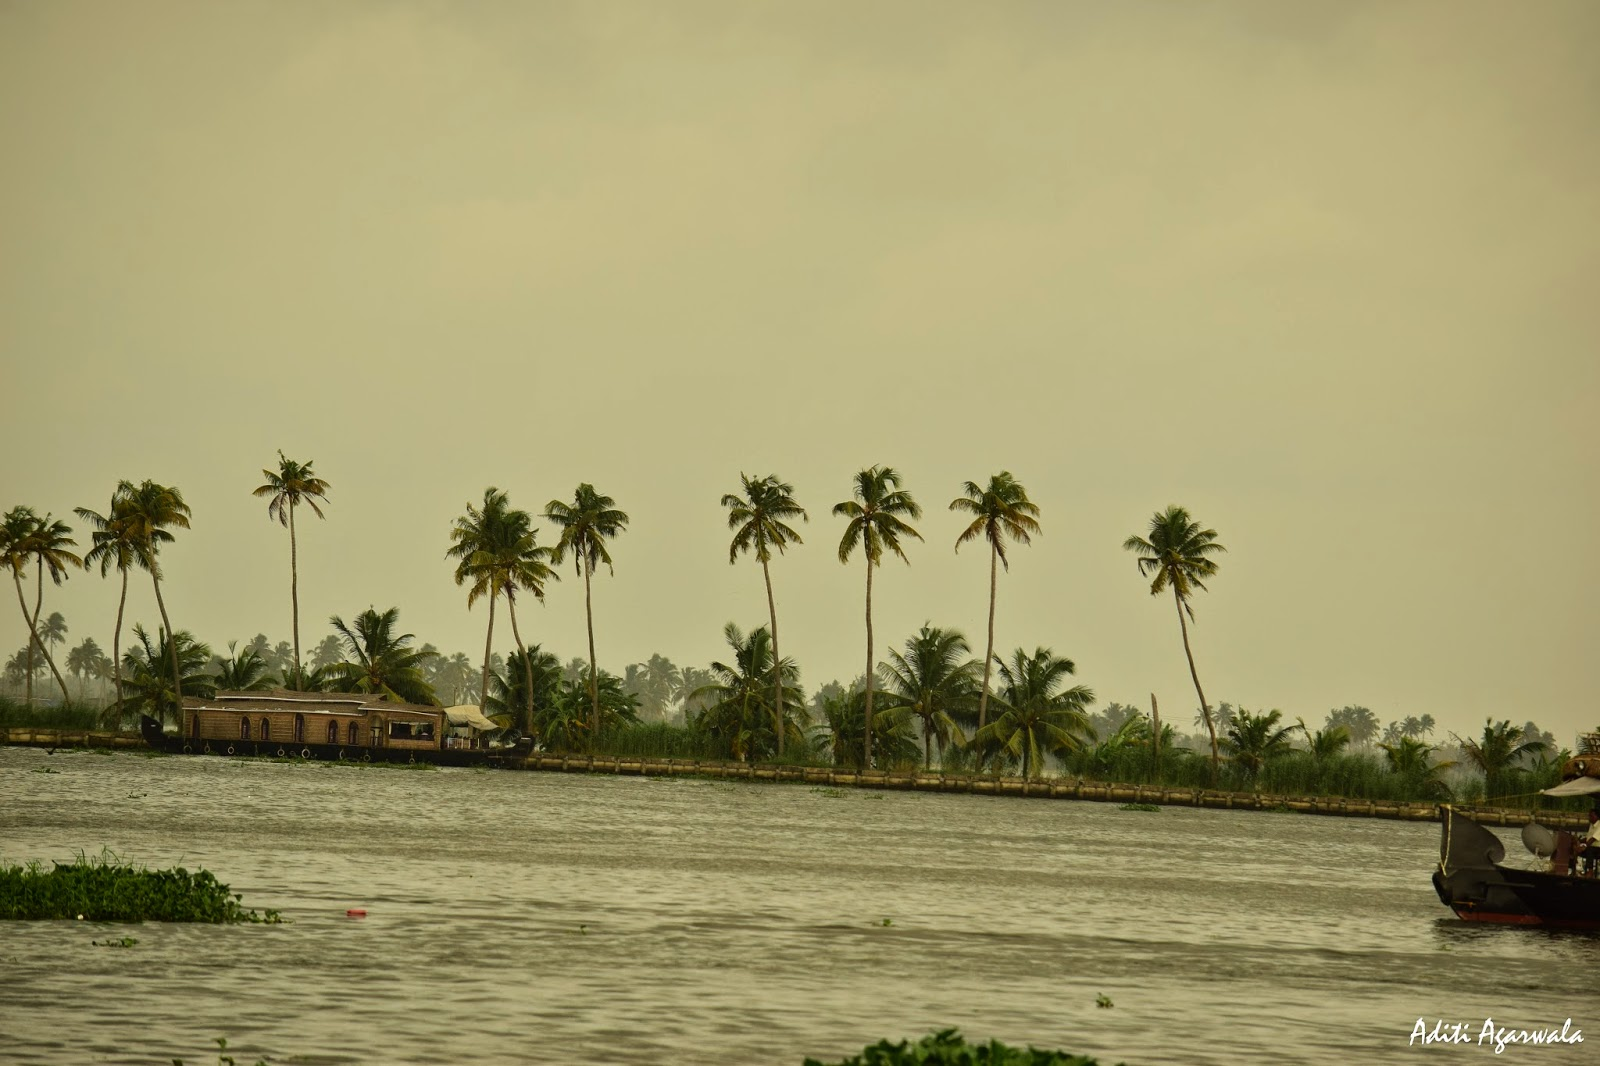 Houseboats sail through the backwaters of Allepey